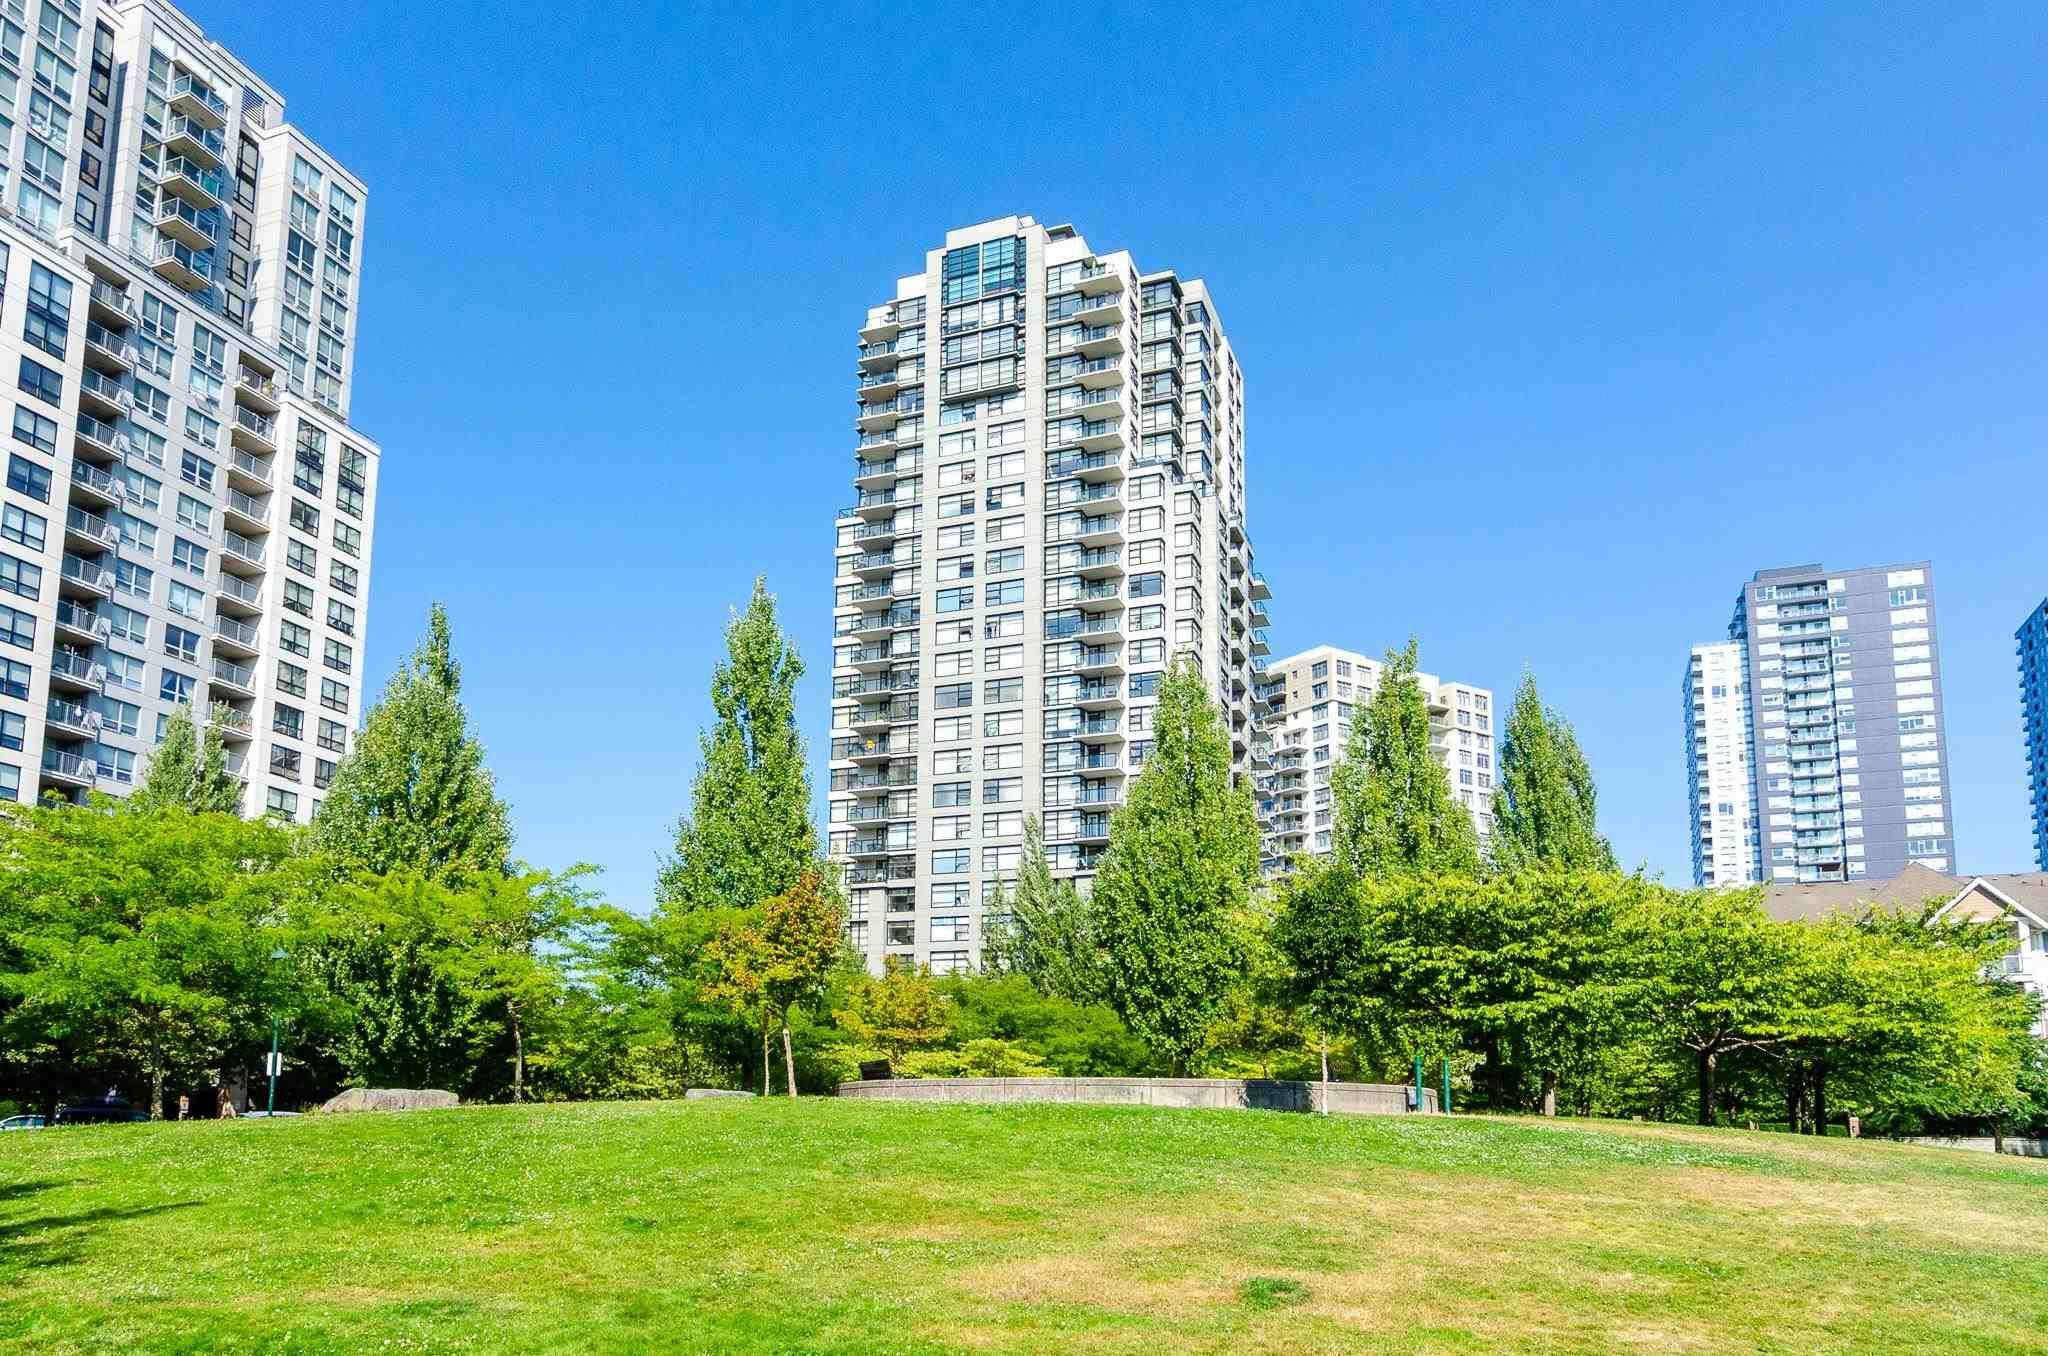 Main Photo: 117 5380 OBEN Street in Vancouver: Collingwood VE Condo for sale (Vancouver East)  : MLS®# R2605564